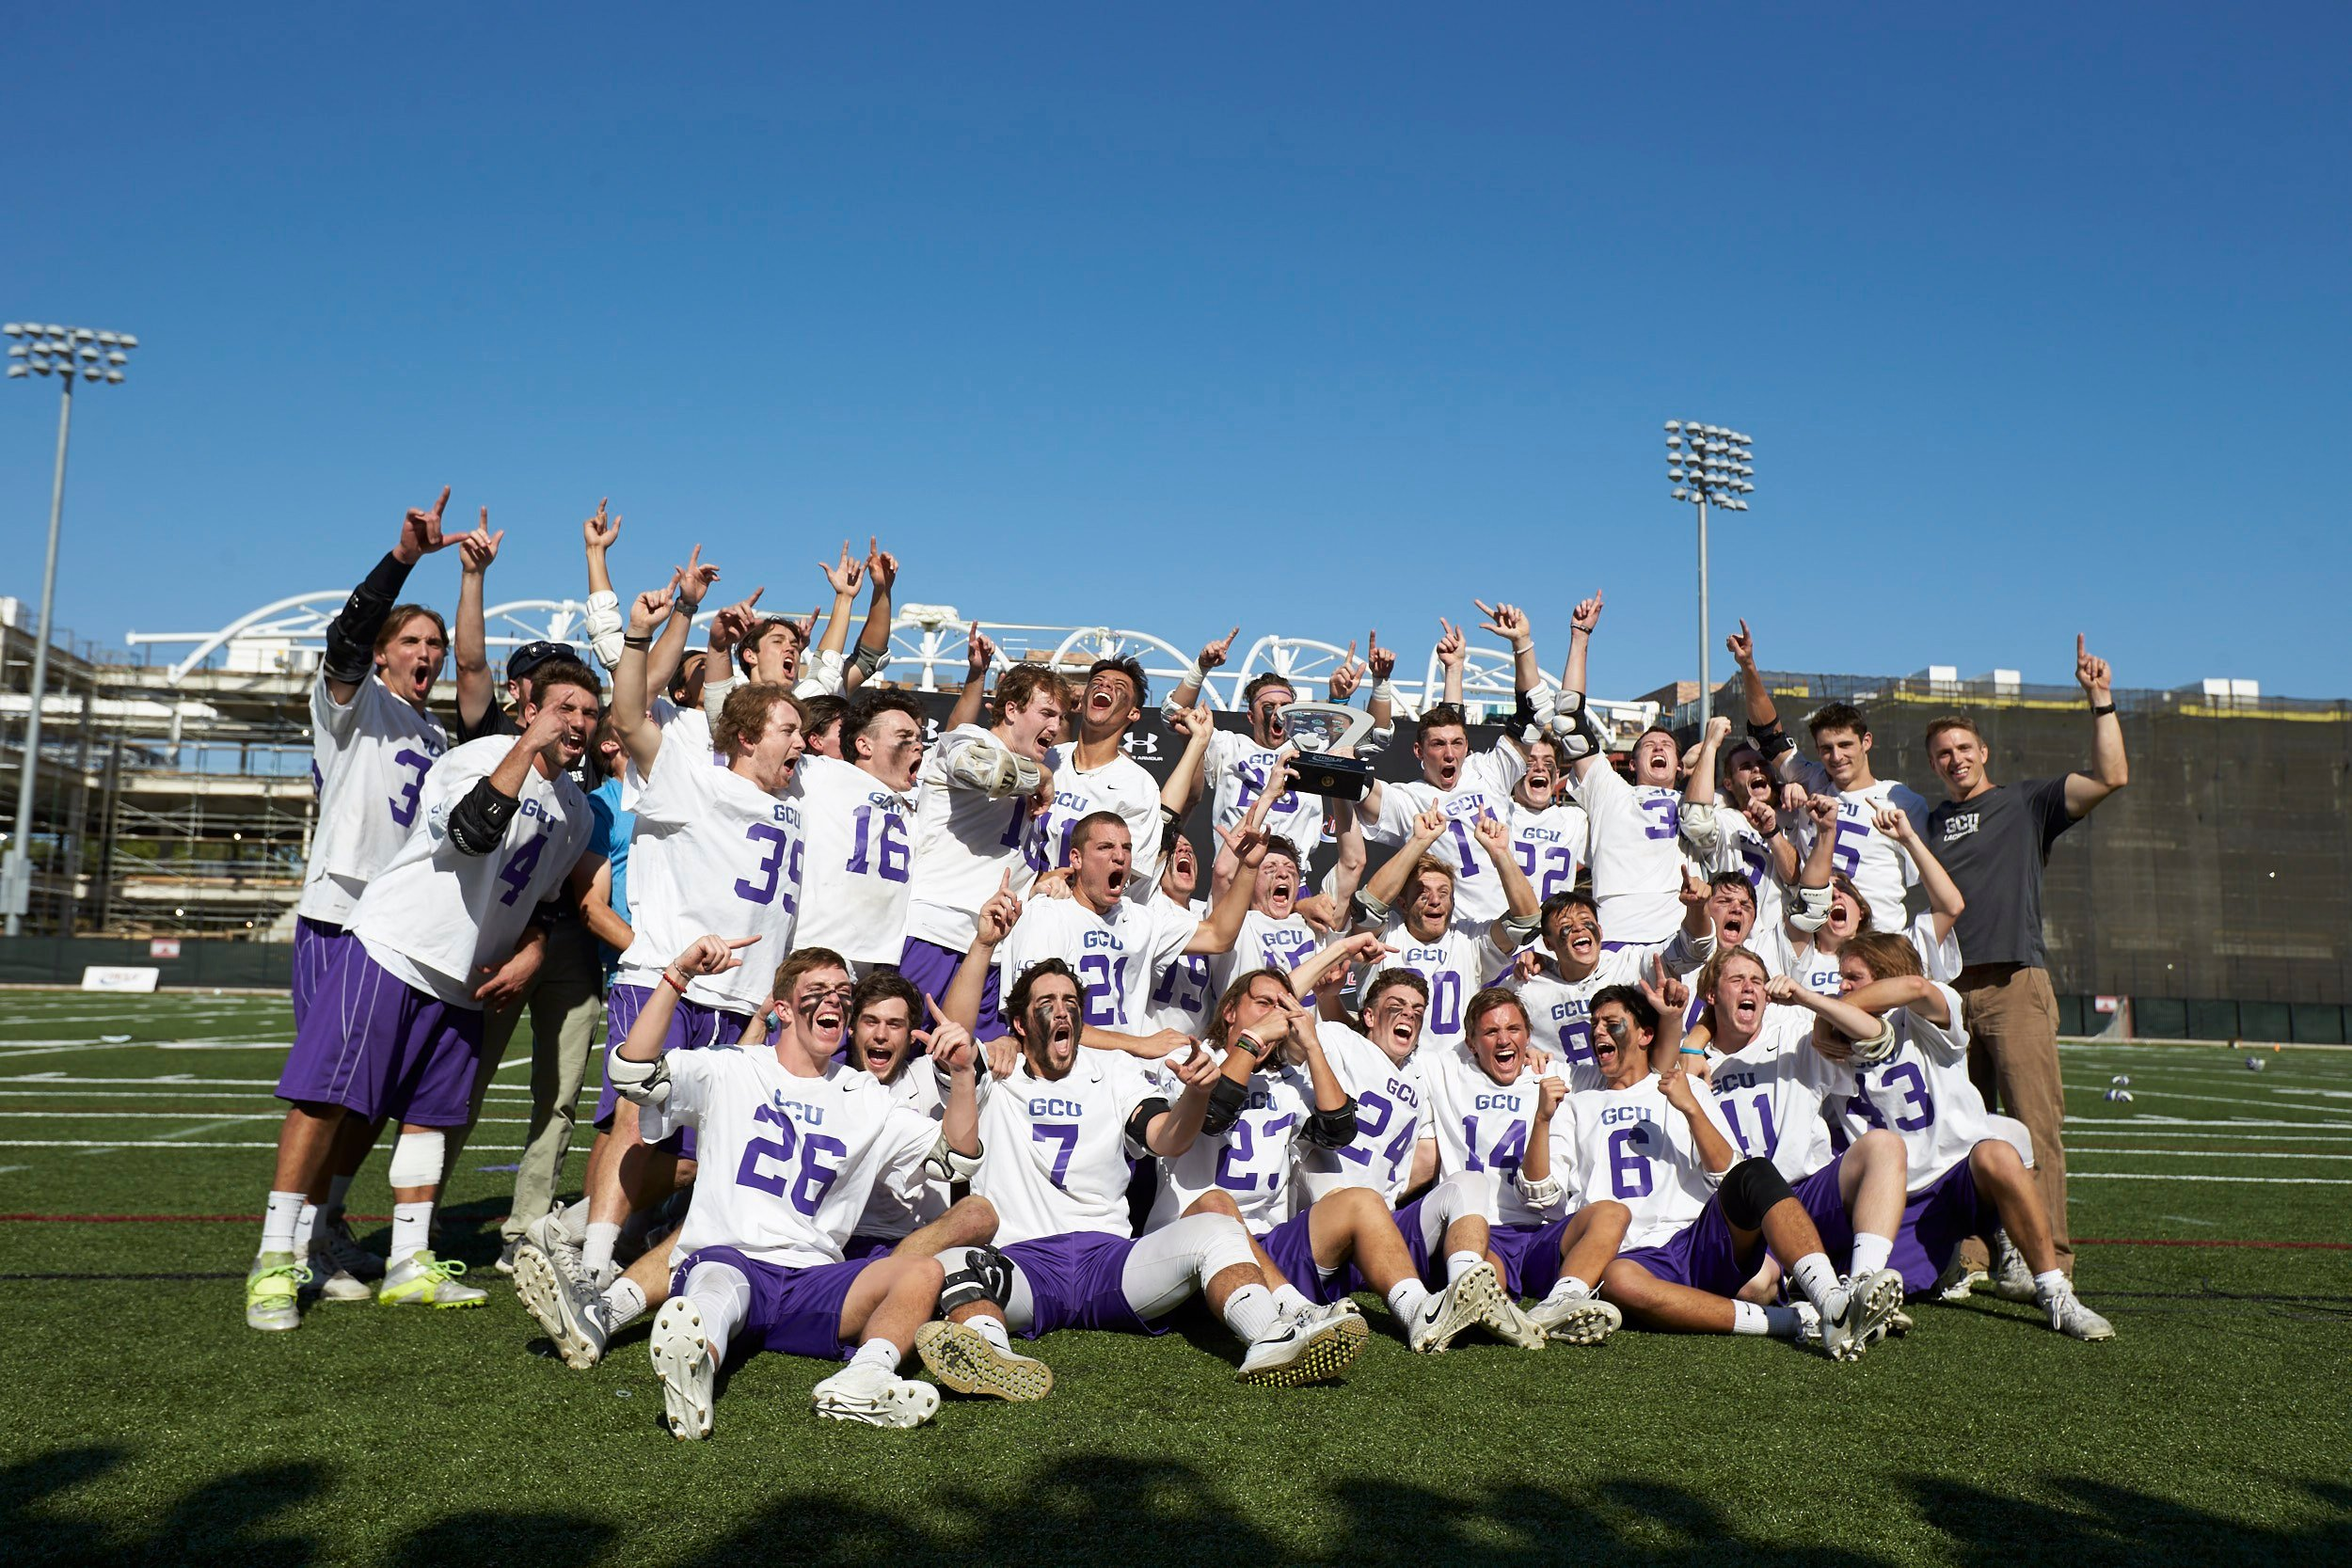 GCU's 13th consecutive win was a 12-8 triumph that was worth a national championship and a lifetime of smiles. (Source: GCU)